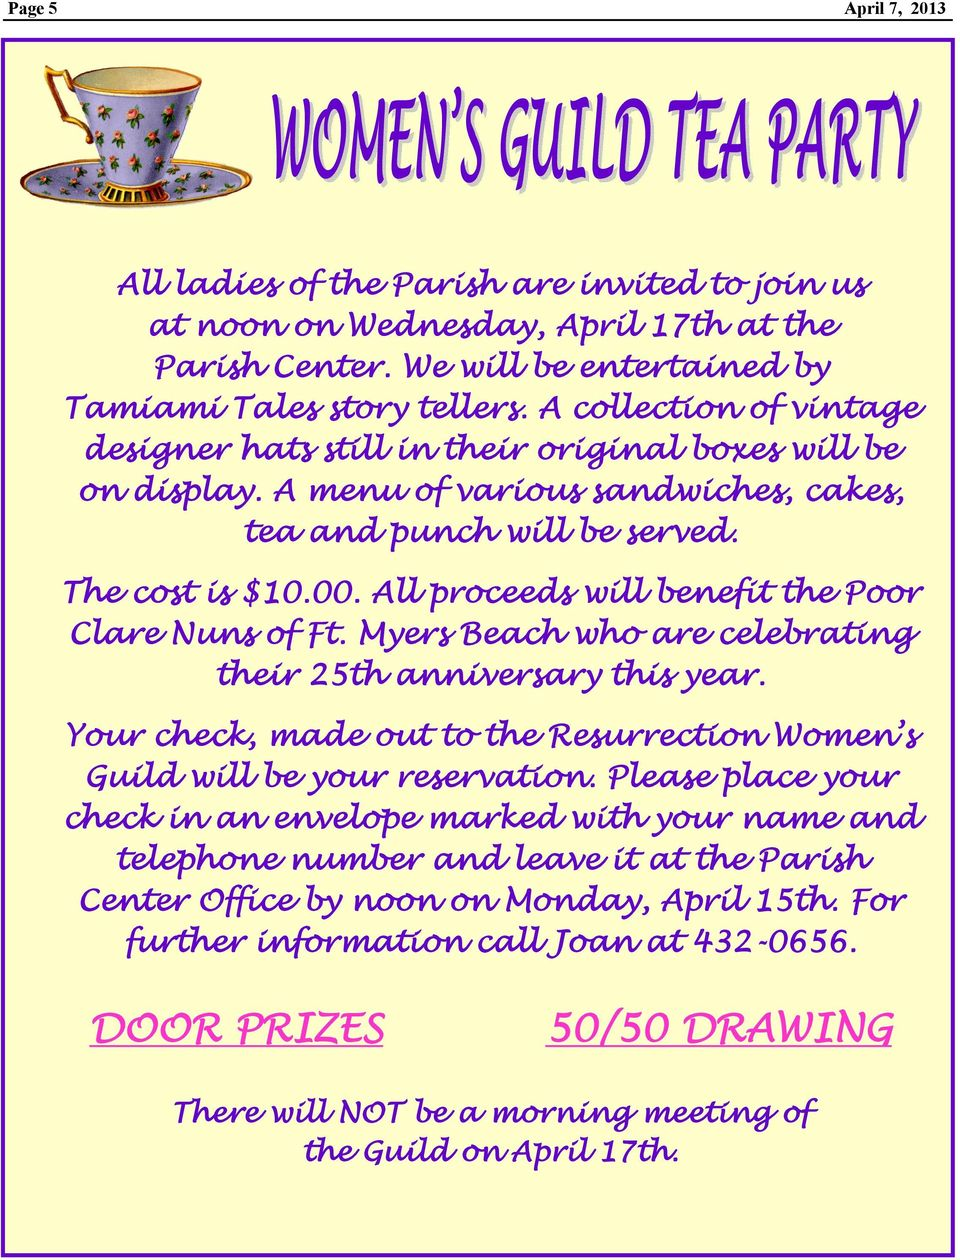 All proceeds will benefit the Poor Clare Nuns of Ft. Myers Beach who are celebrating their 25th anniversary this year. Your check, made out to the Resurrection Women s Guild will be your reservation.